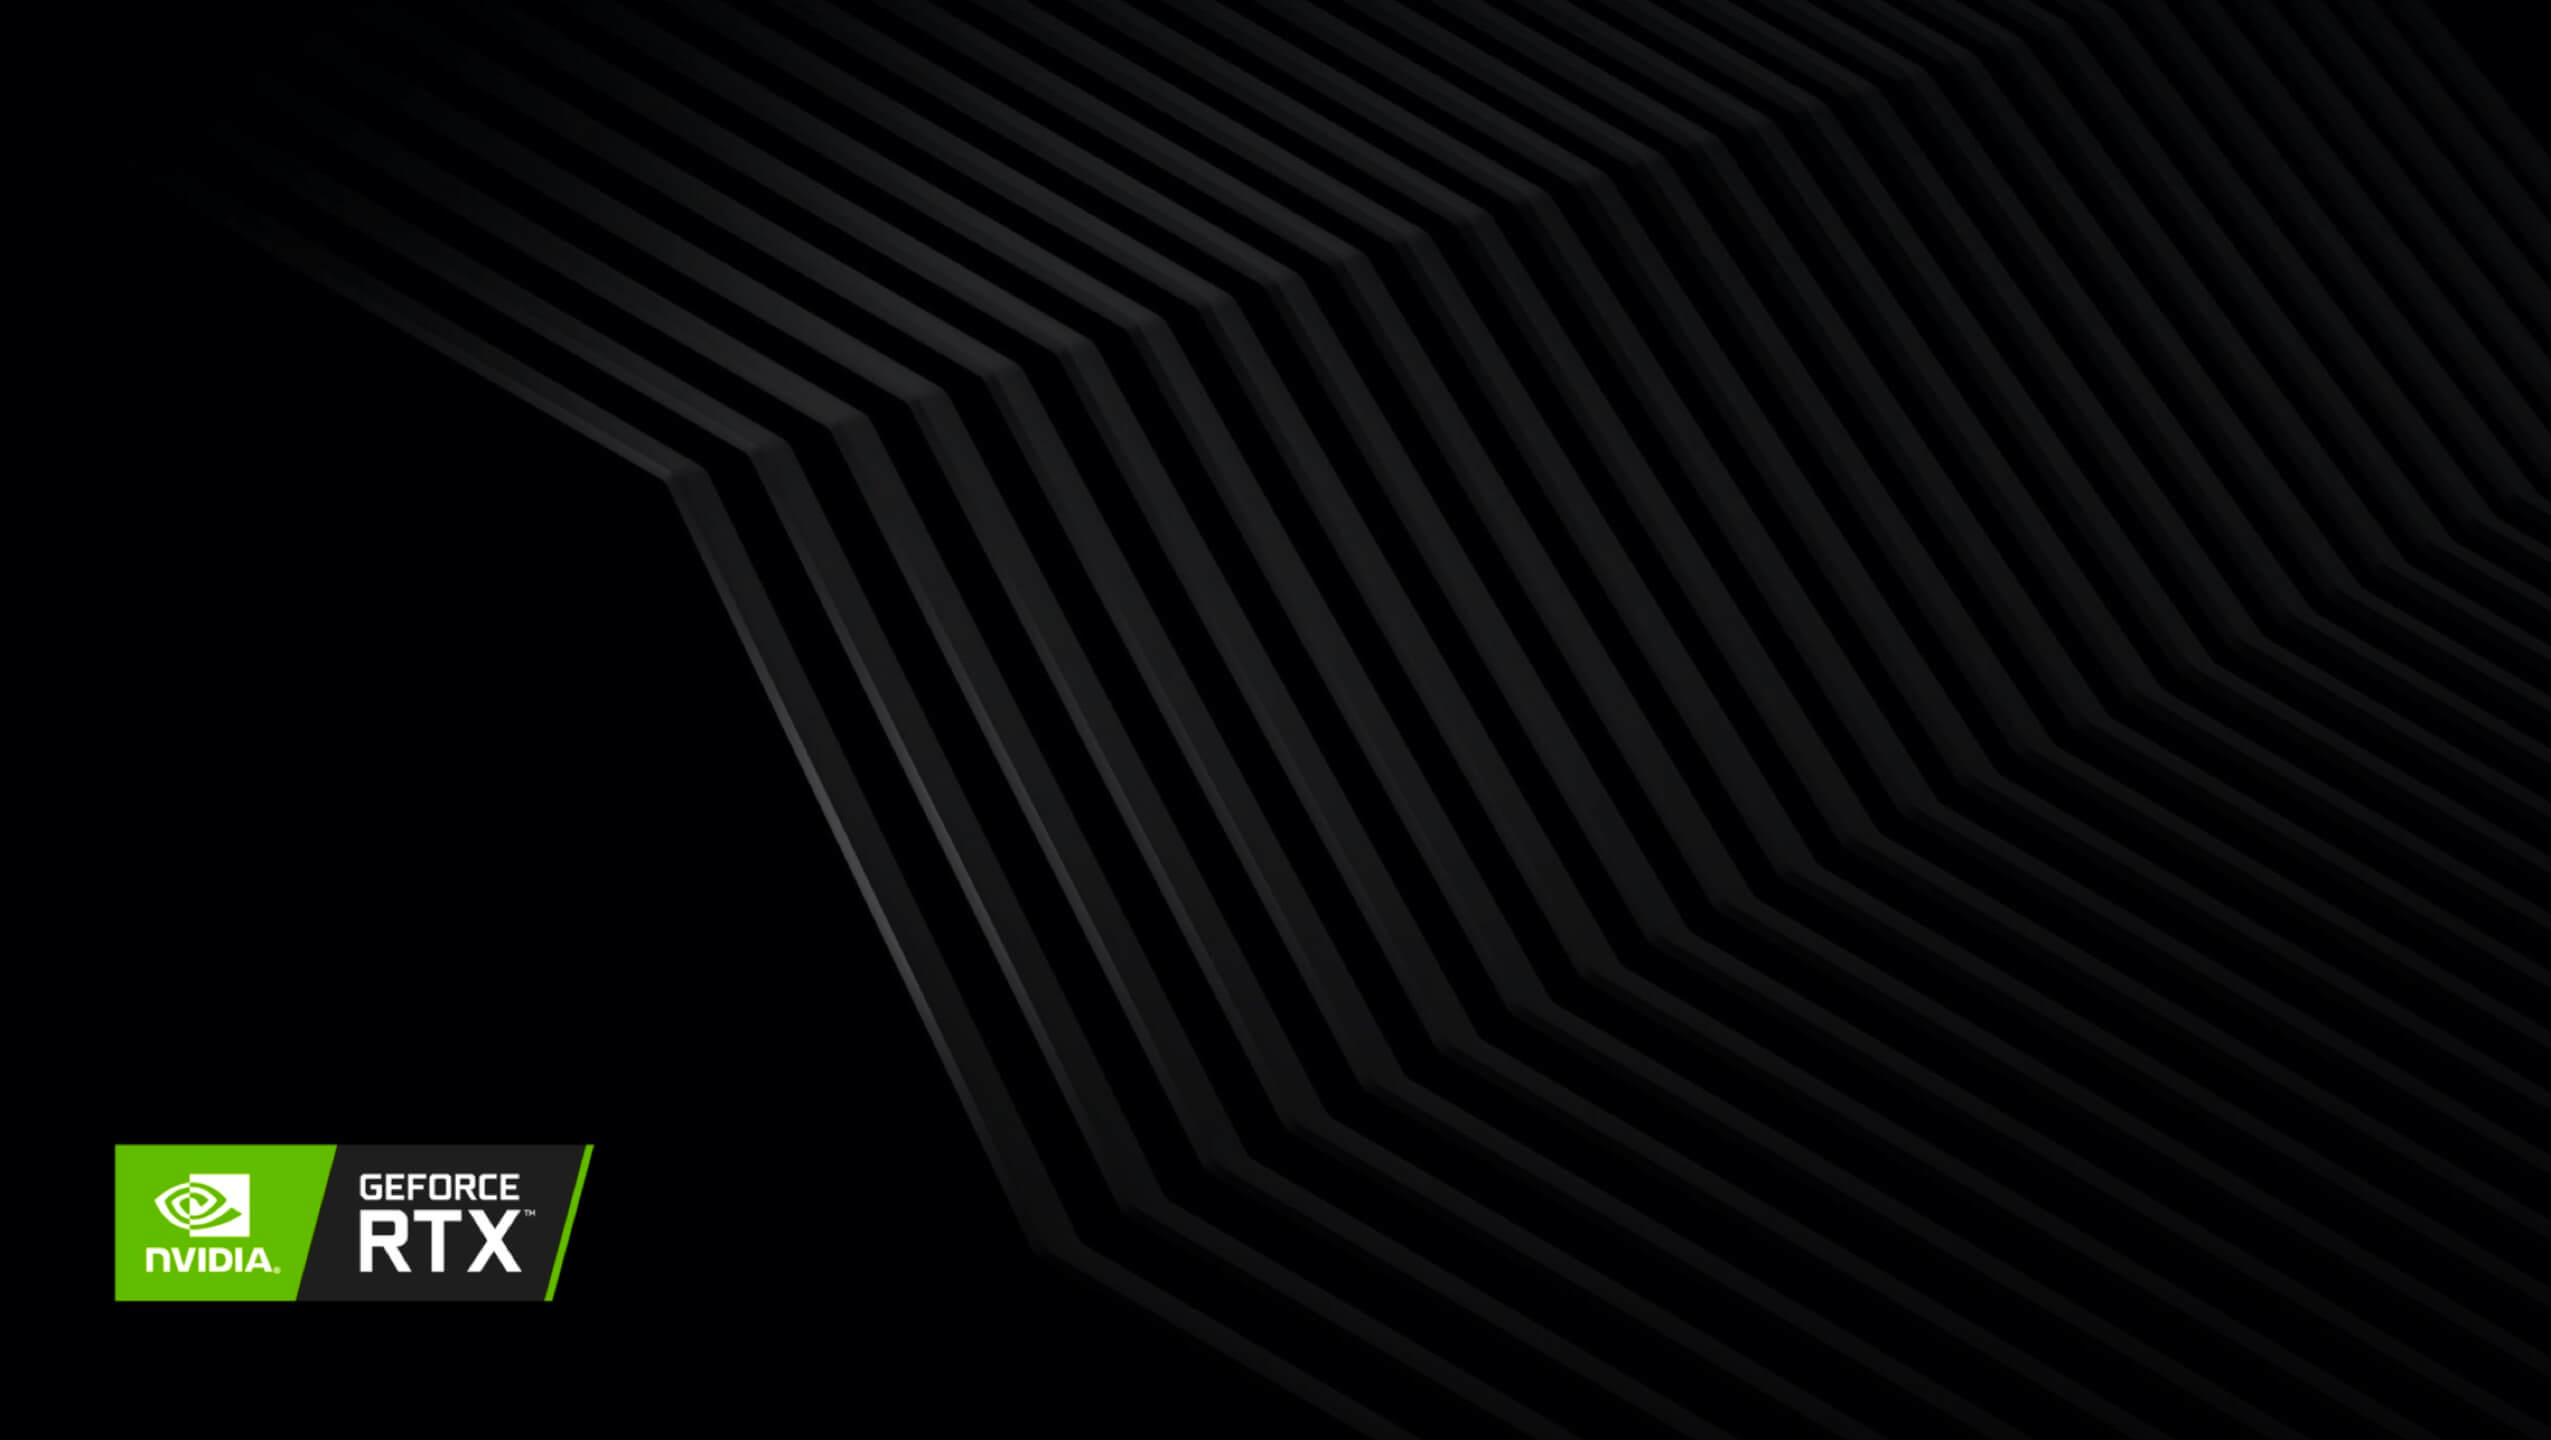 Nvidia goes Super with new GeForce RTX GPUs for gaming laptops